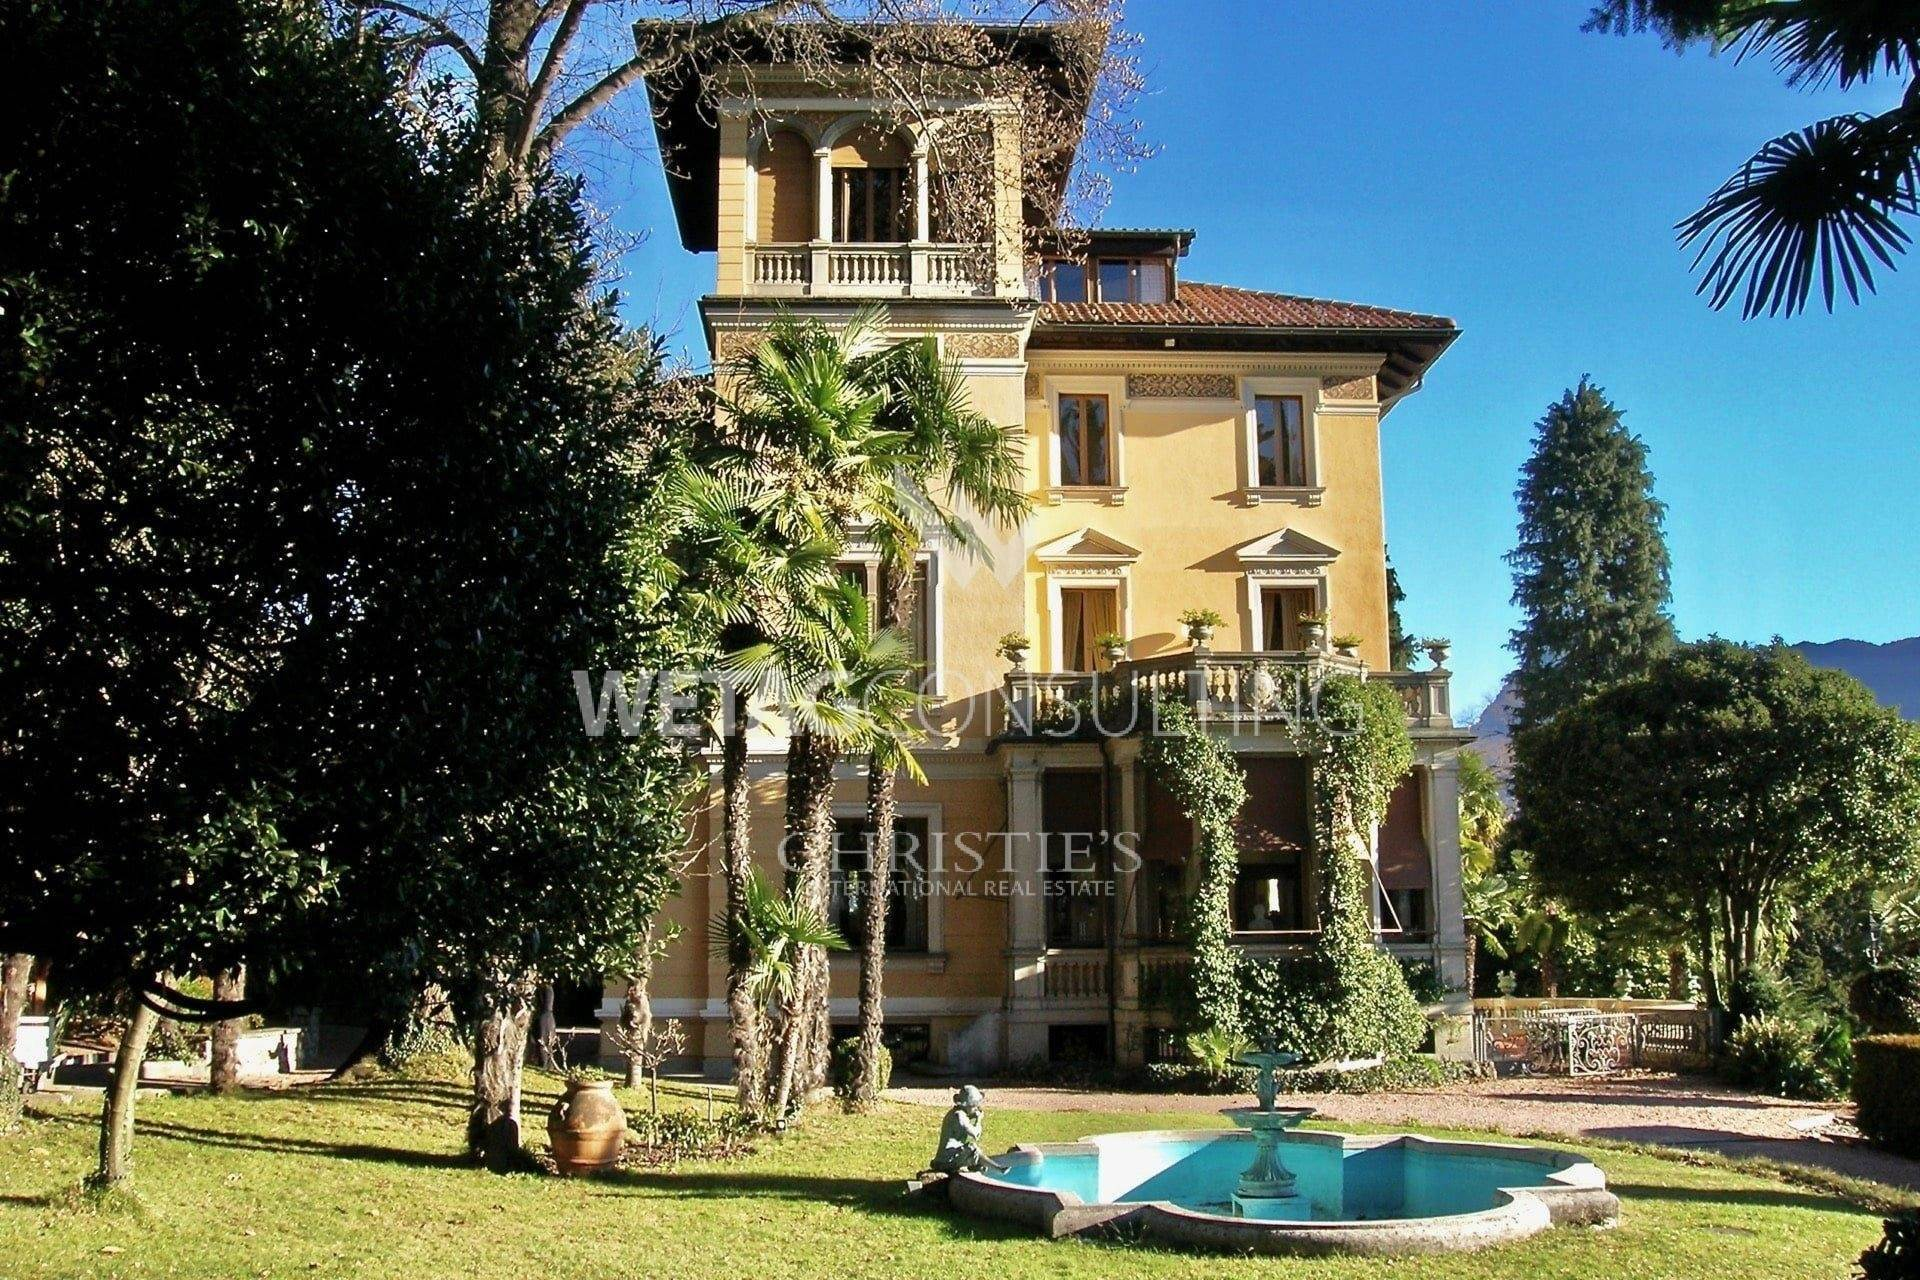 別墅 / 联排别墅 為 出售 在 Luxury villa Floridiana in Lugano for sale Porza, 提契诺,6948 瑞士